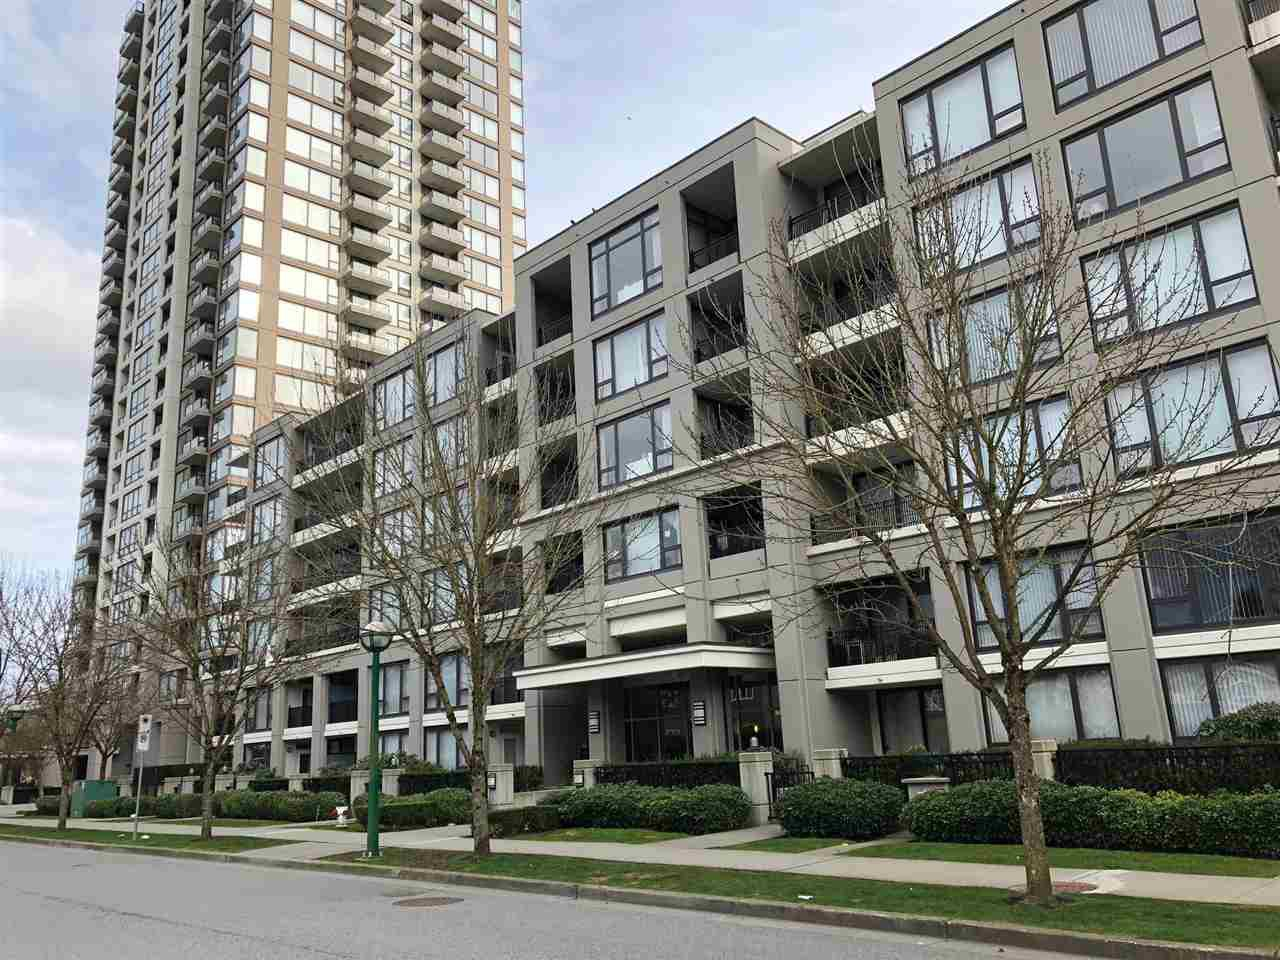 Main Photo: 112 7138 COLLIER Street in Burnaby: Highgate Condo for sale (Burnaby South)  : MLS®# R2266135